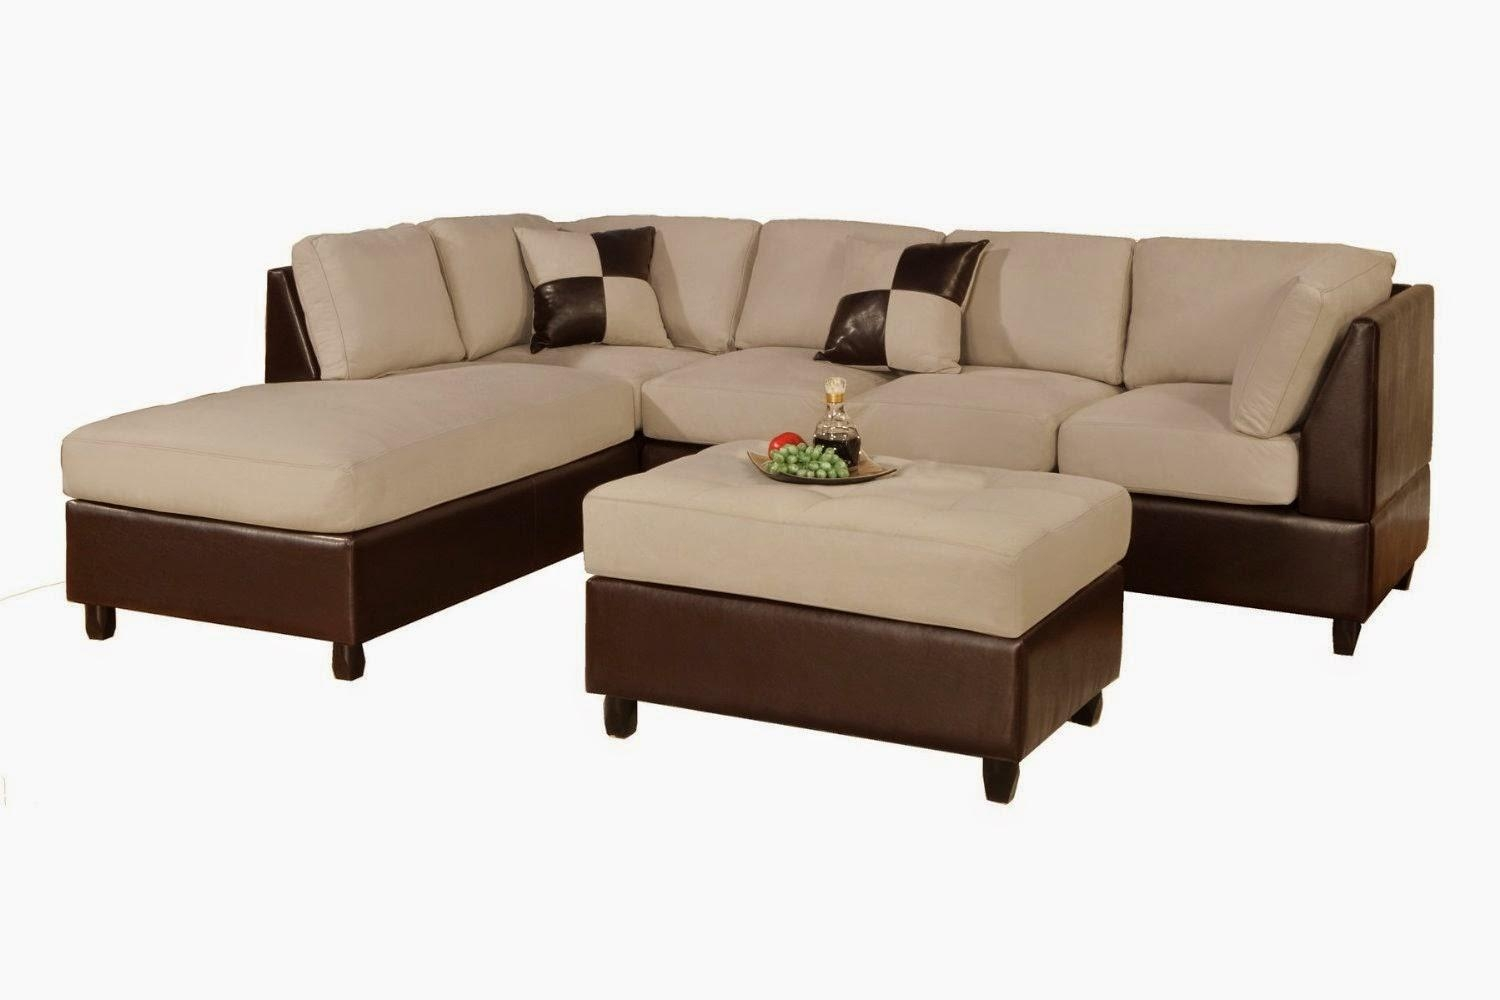 Decor: Inspiring L Shaped Sofa For Living Room Furniture Ideas Intended For Small L Shaped Sofas (Image 2 of 20)